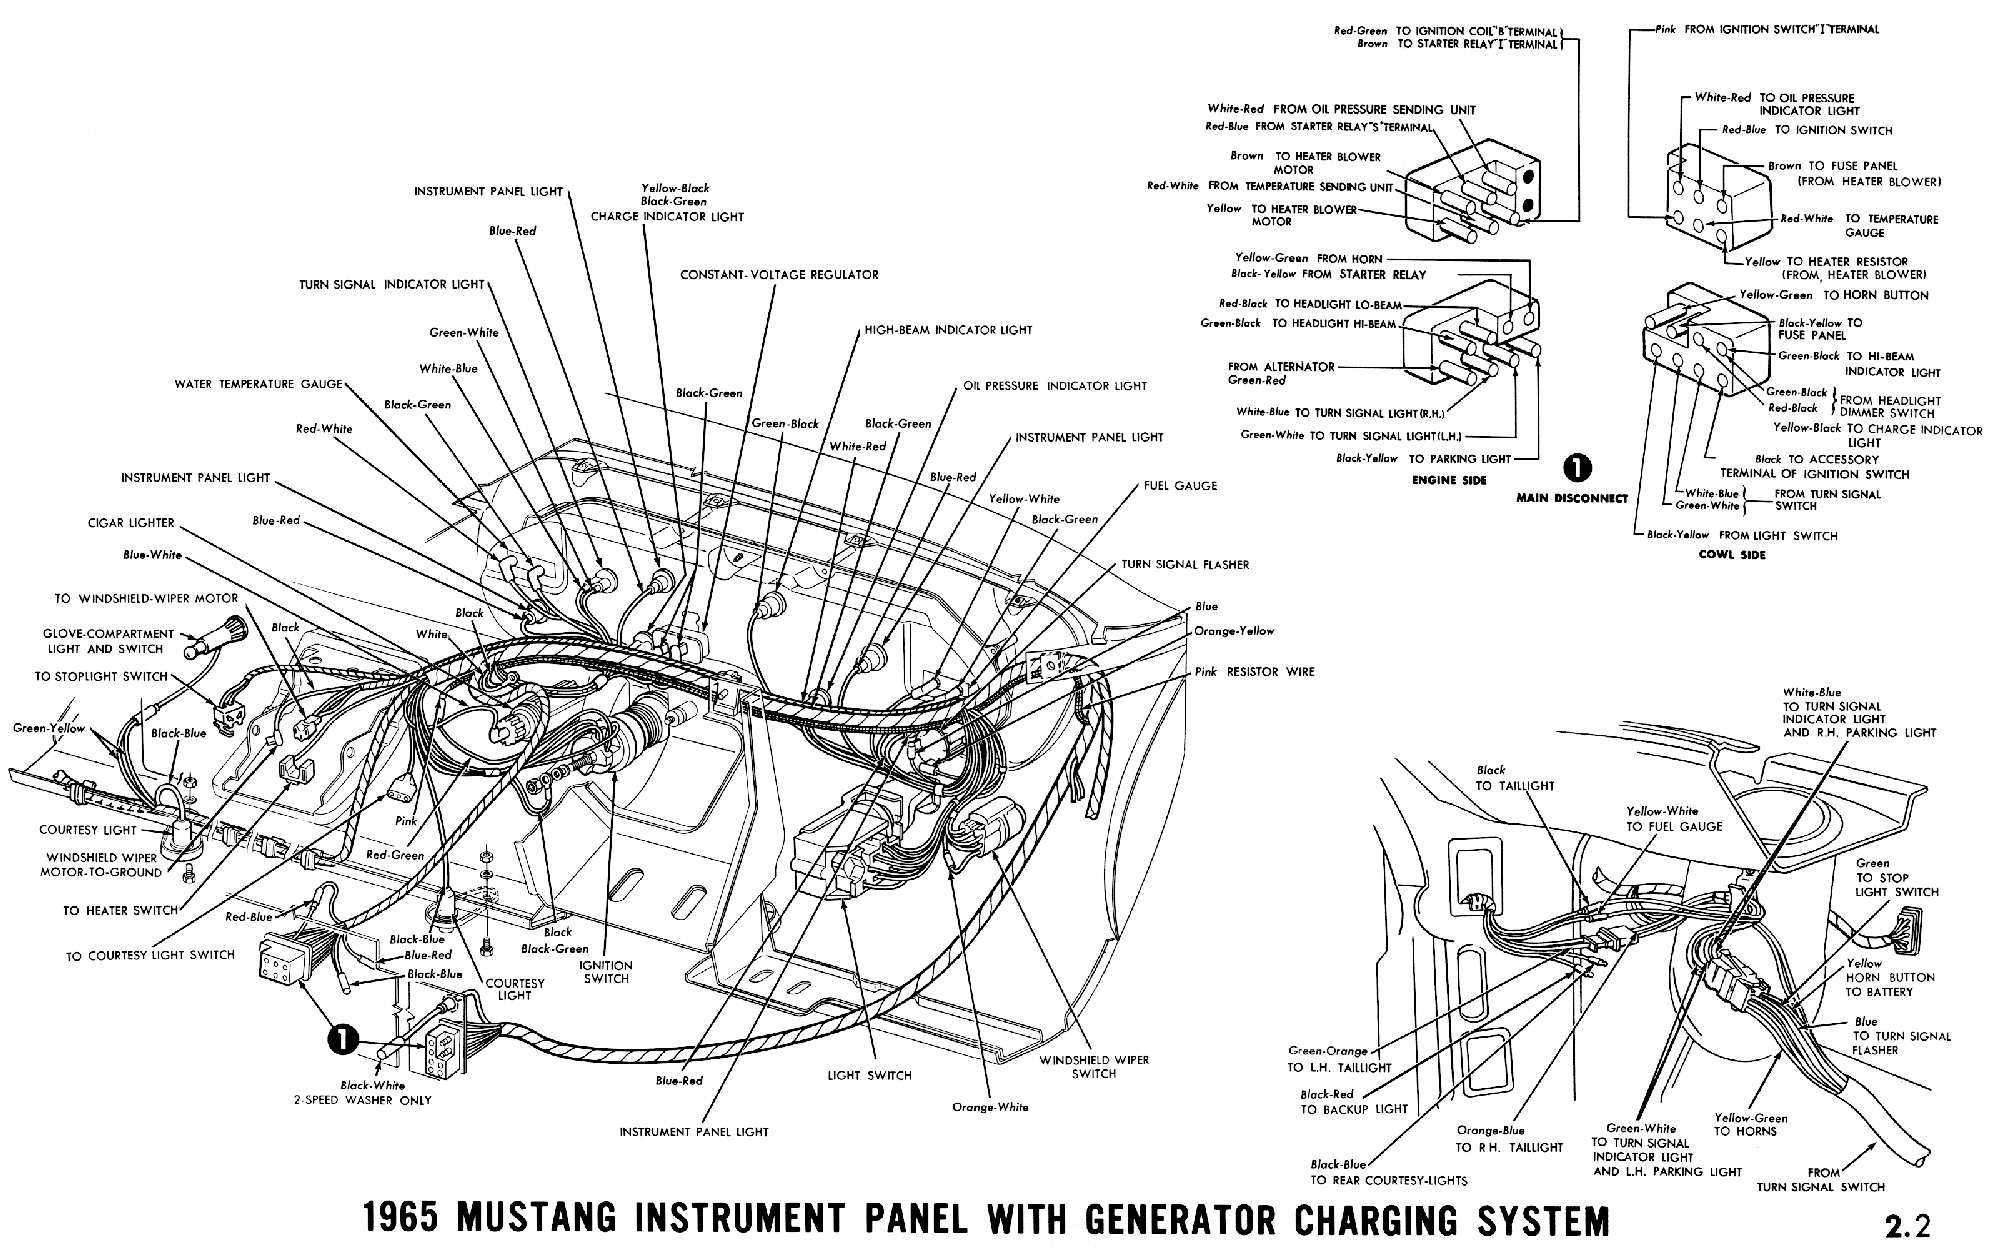 2006 Town Car Stereo Diagram Best Secret Wiring Lincoln Zephyr Diagrams 1997 System Bose Speaker